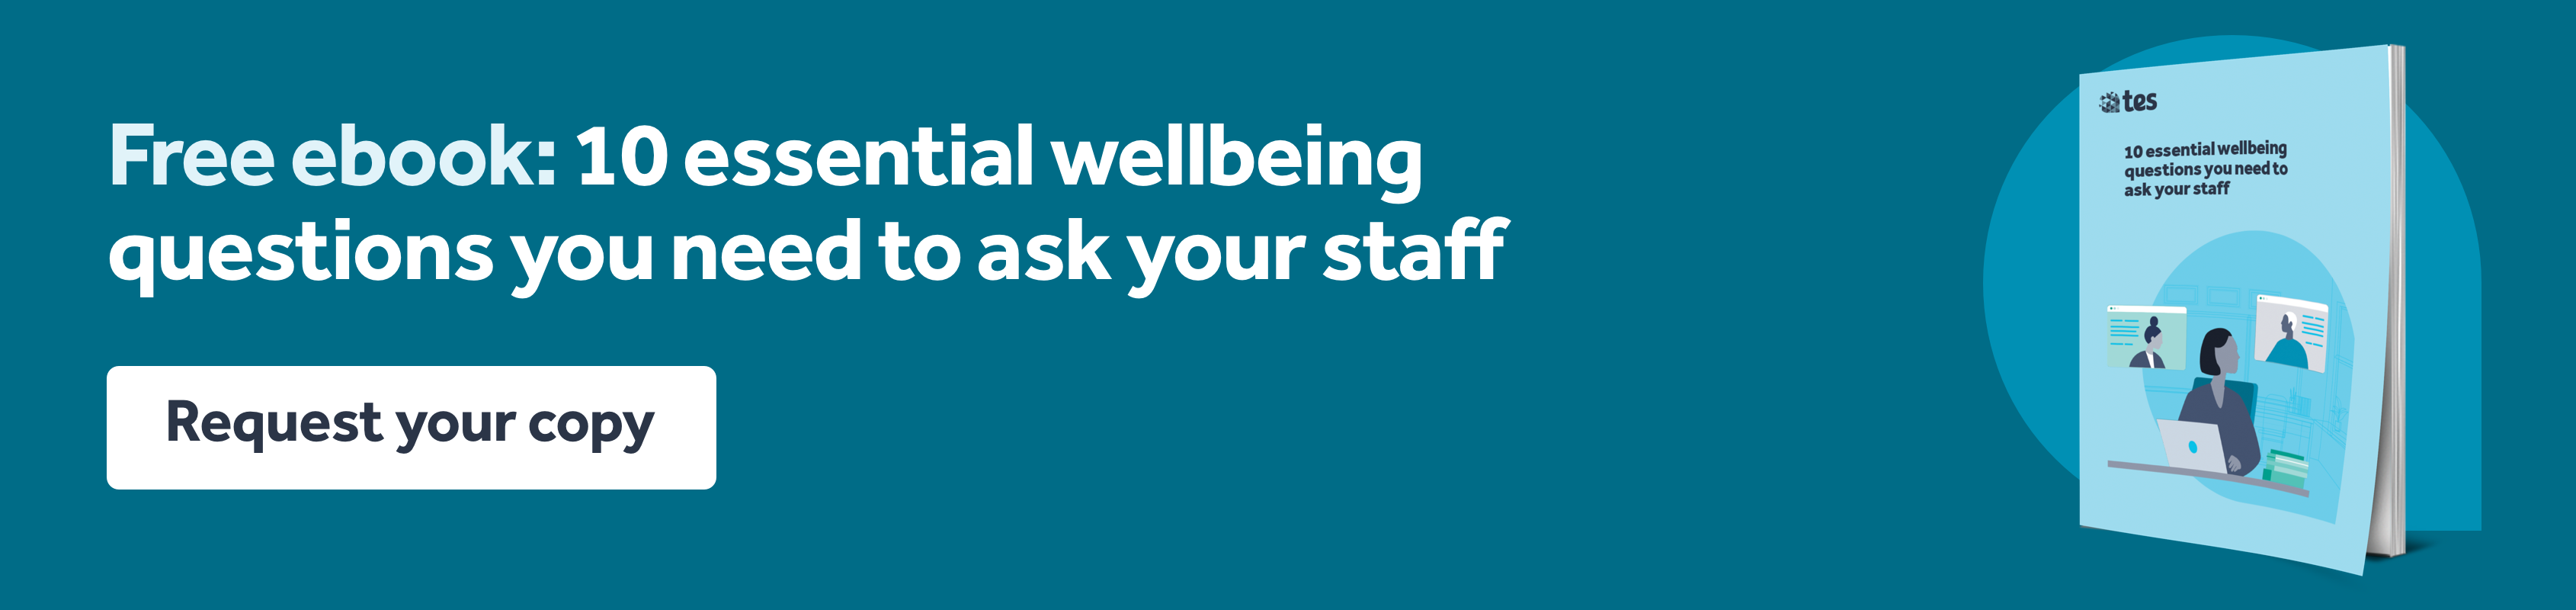 Wellbeing - 10 questions to ask your staff